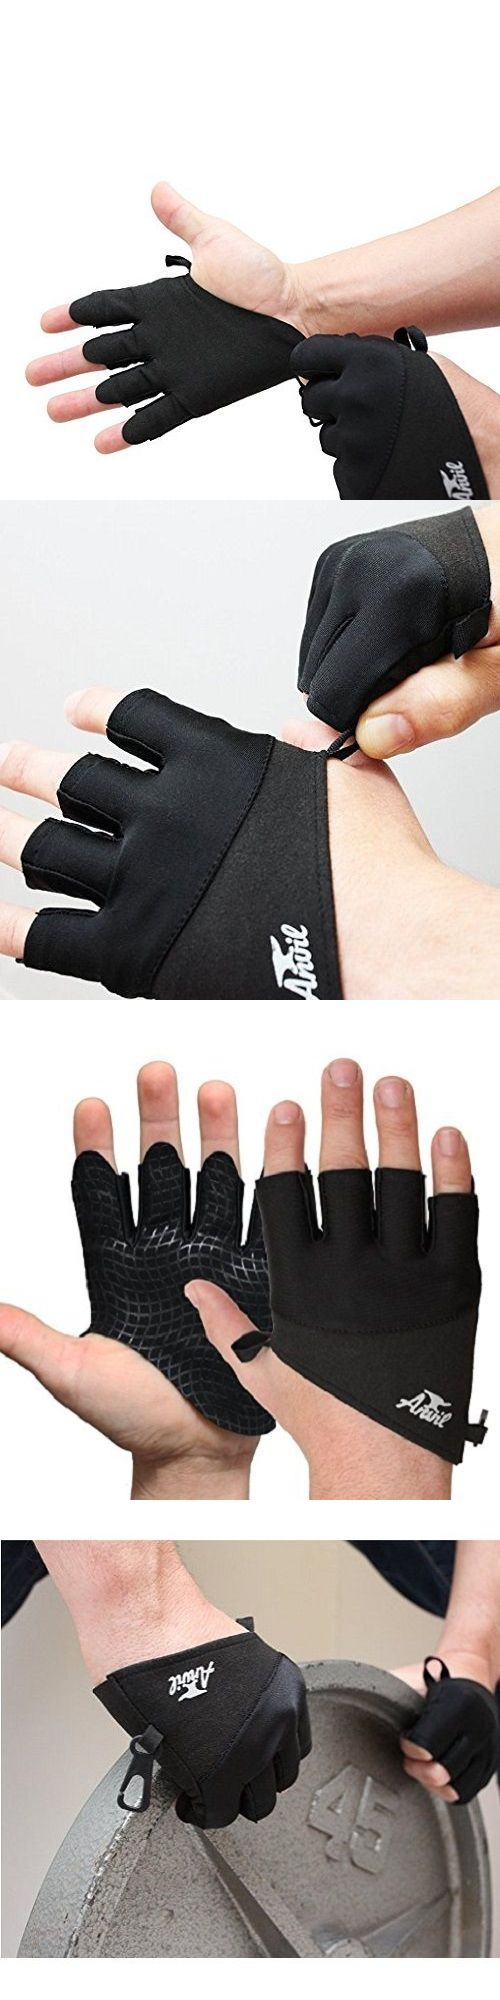 Gloves Straps and Hooks 179820: Best Weight Lifting Gloves Large Hand Gloves For Gym Men Women Fitness Gear Kit -> BUY IT NOW ONLY: $99.98 on eBay!